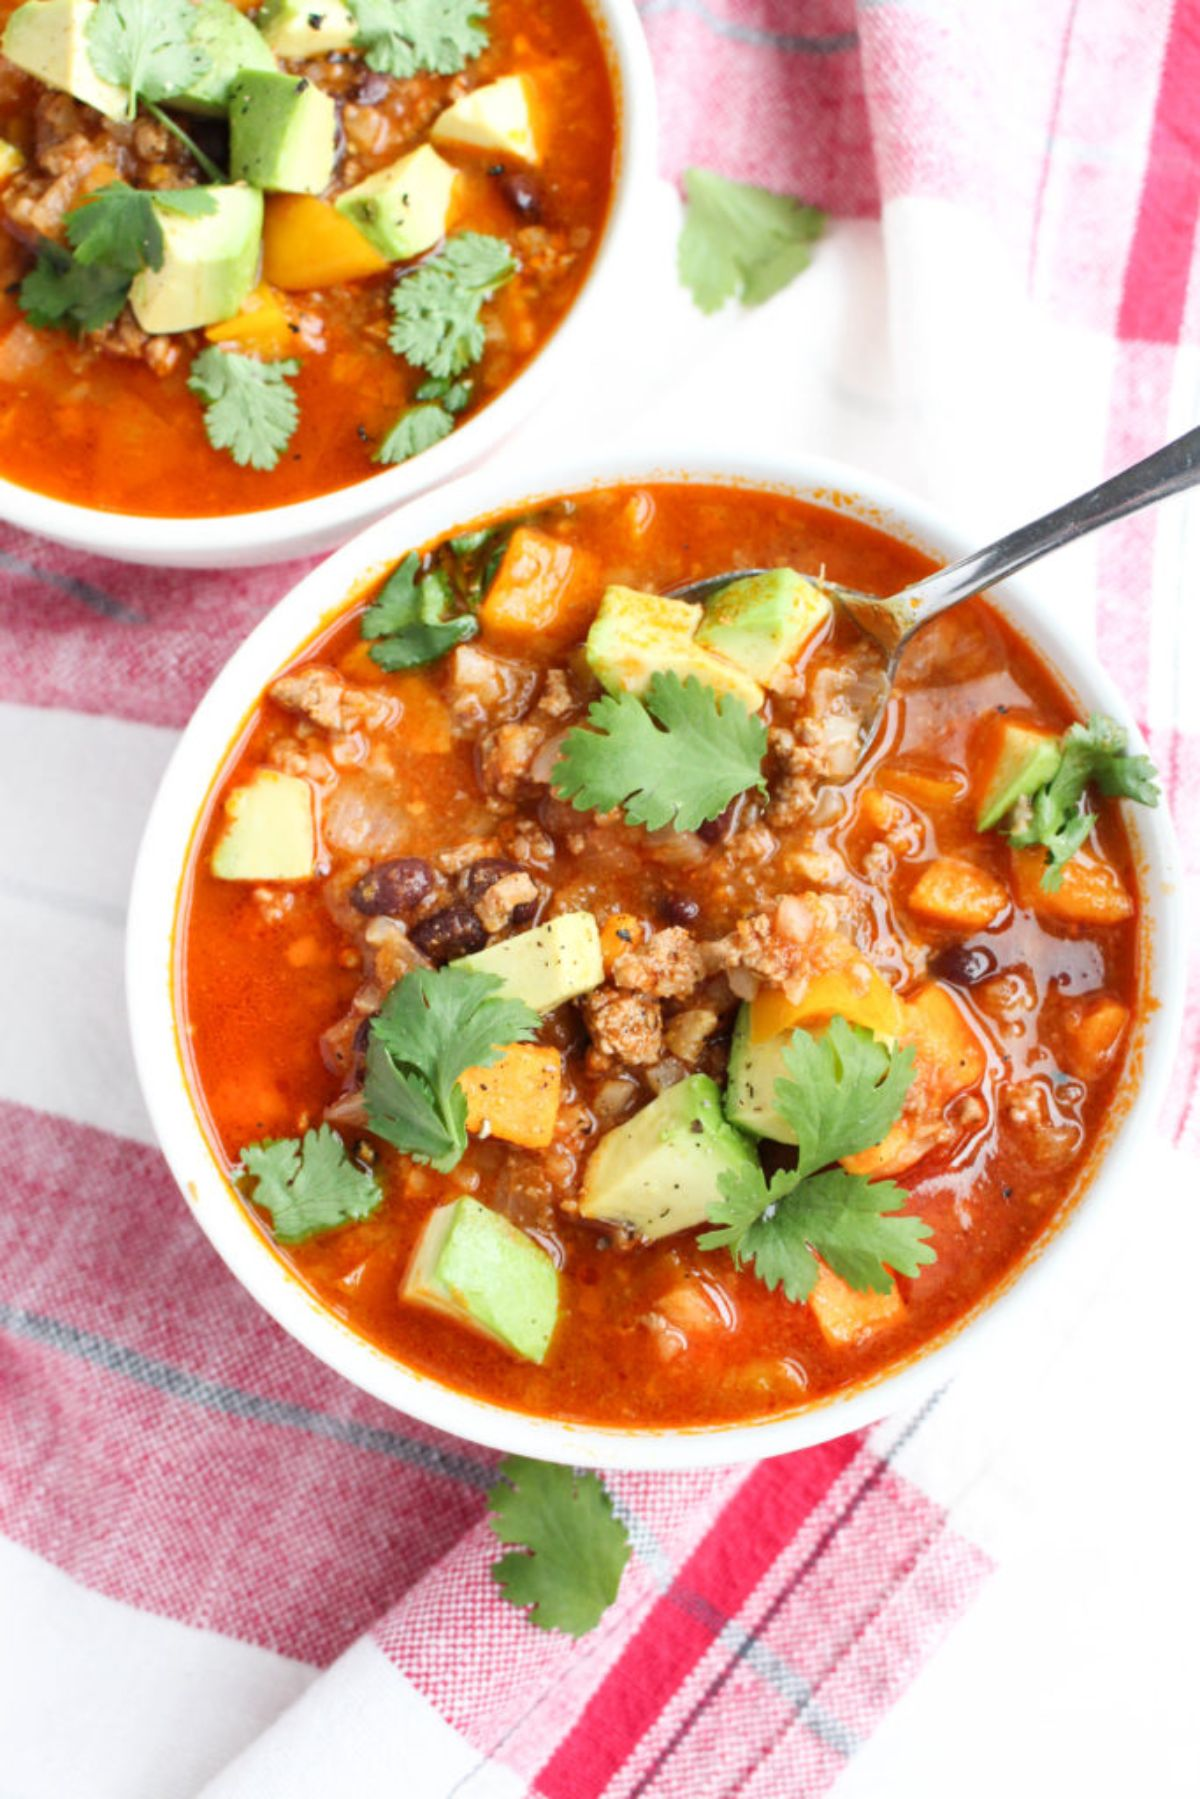 2 white bowls of taco soup toppped with avocado and herbs, a silver spoon resting in one bowl